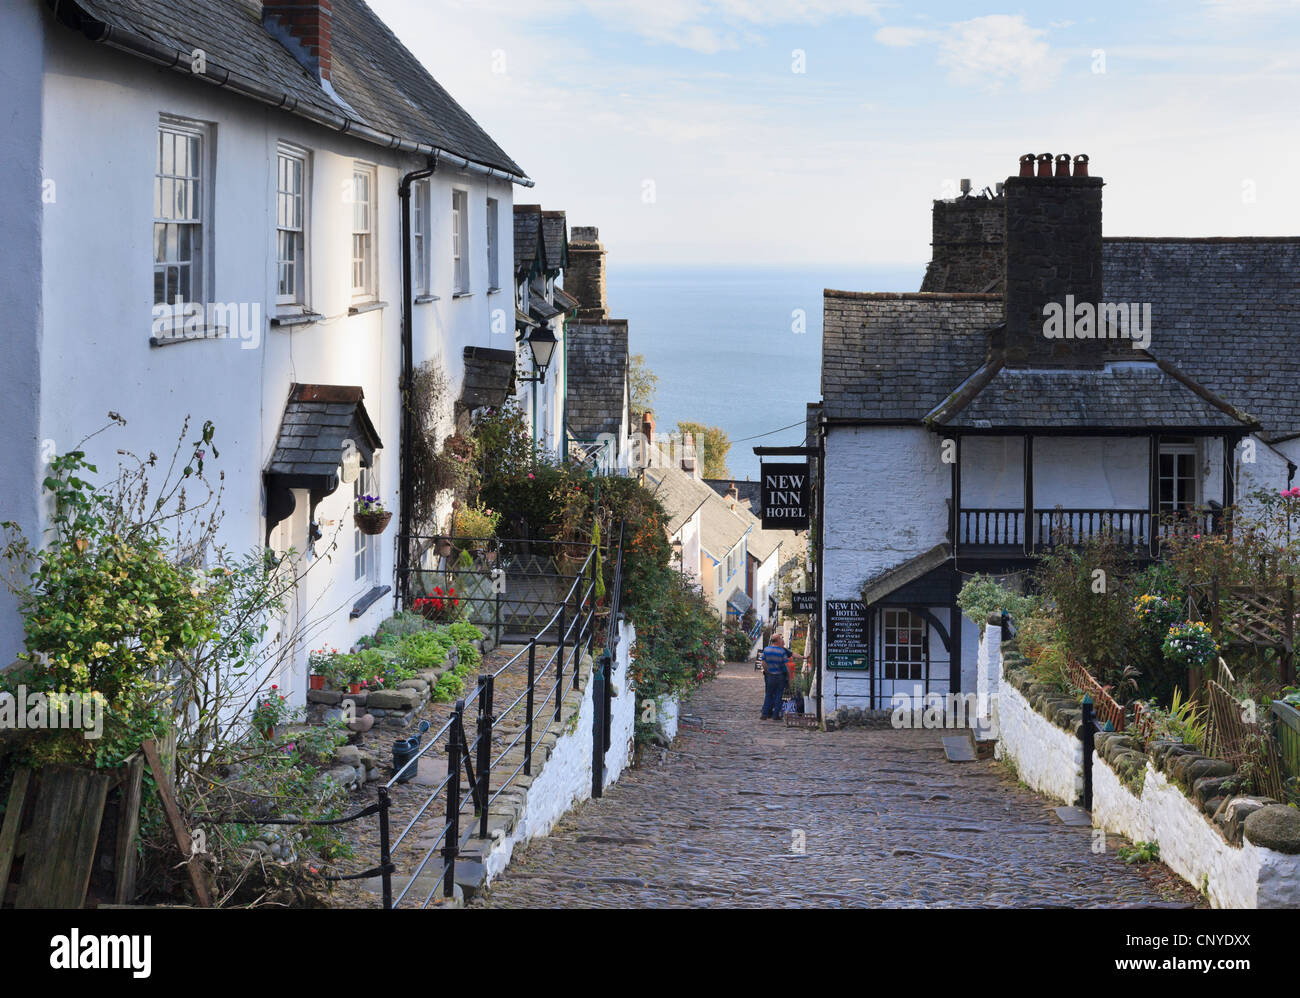 View to the sea down steep narrow cobbled street in quaint old village of Clovelly, North Devon, England, UK, Britain - Stock Image